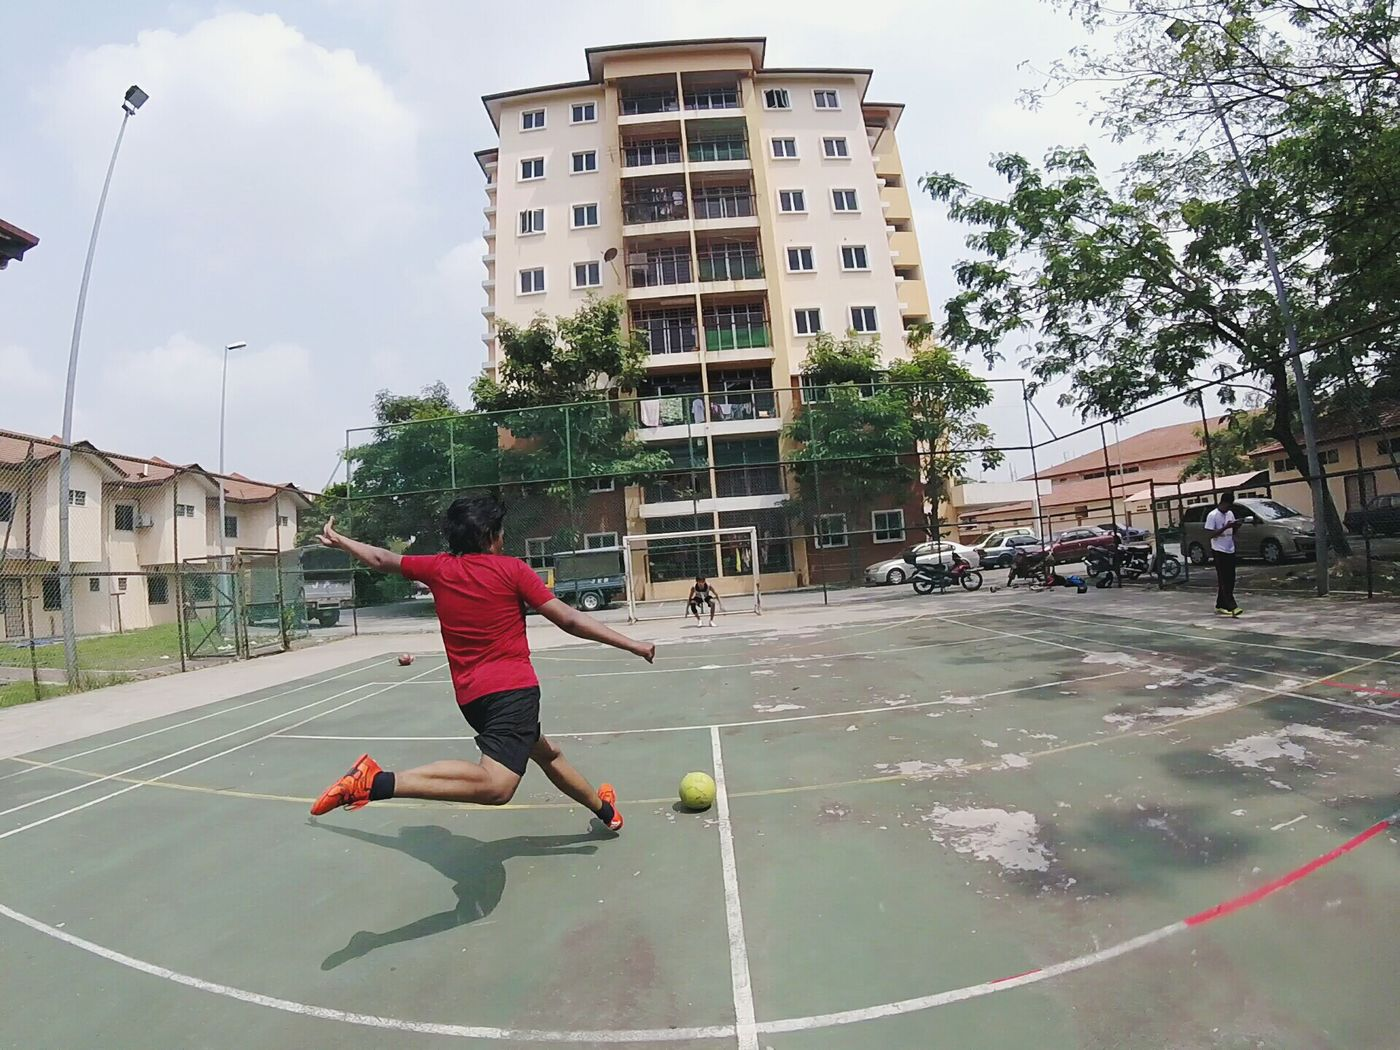 Tekkers! Football Futsal Freekick Freekickposition Adidas FutsalTime Futsalourlife Futsalistas💟 Enjoying Life Relievestress That's Me Check This Out